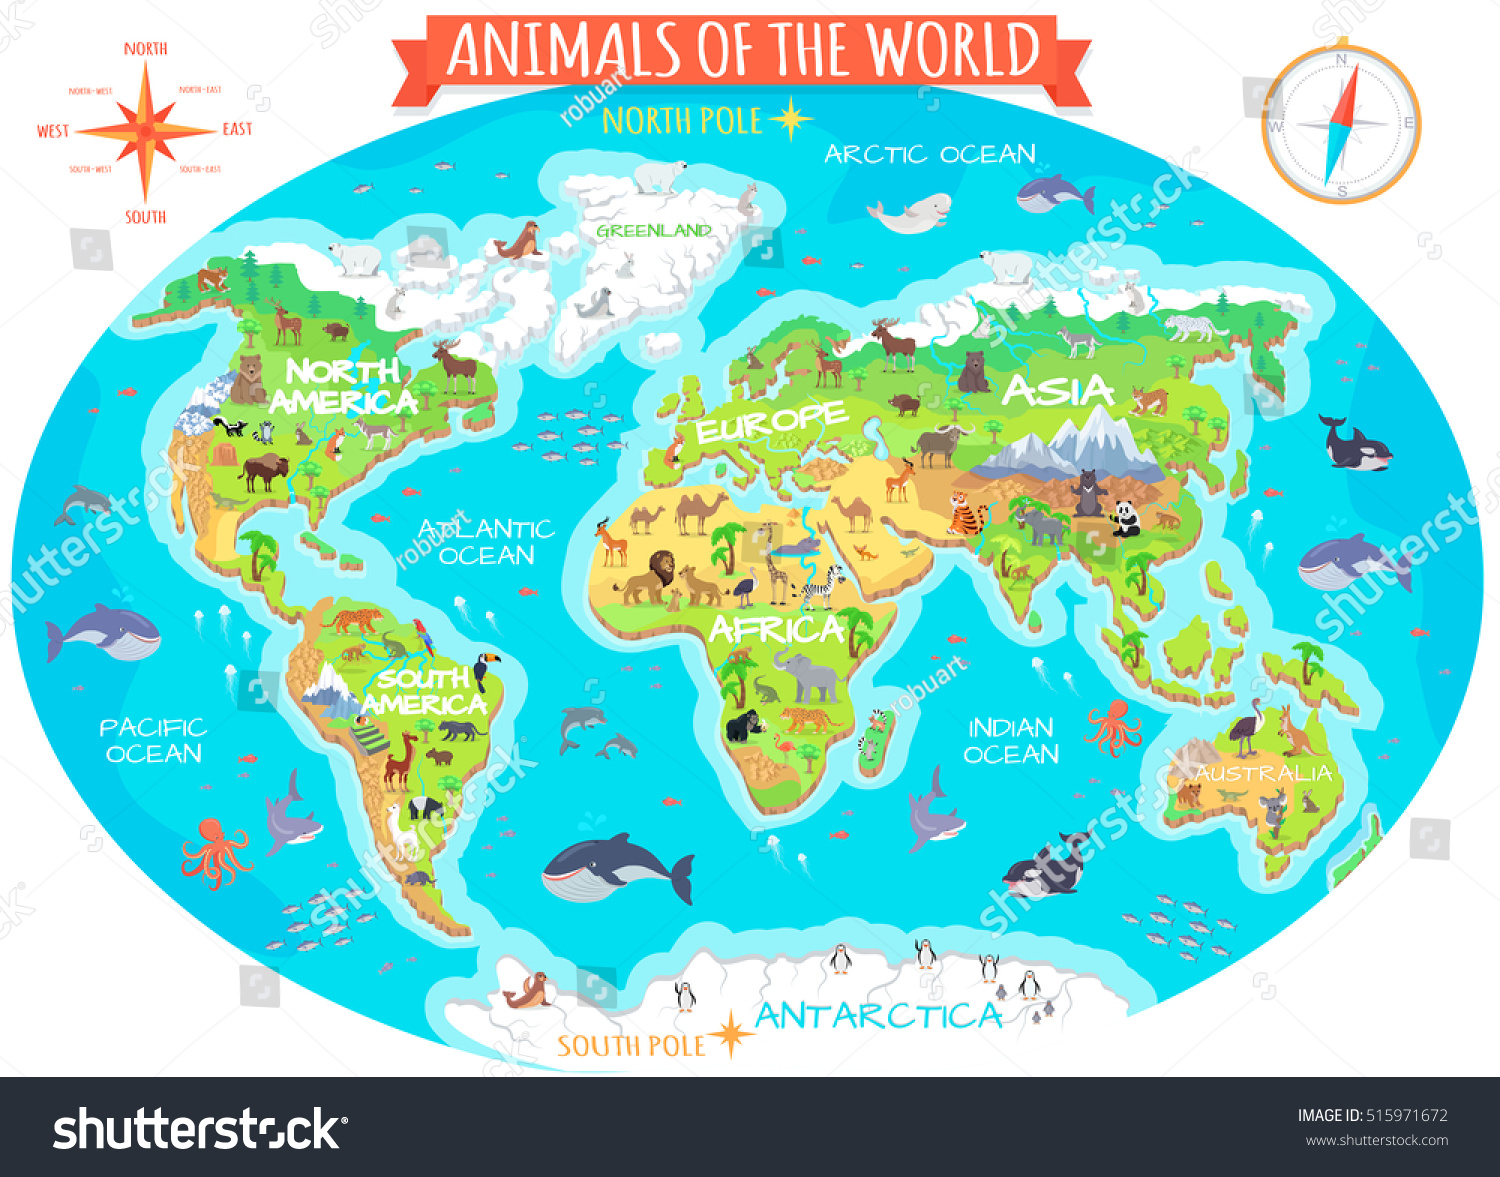 Animals world flat style world globe stock illustration 515971672 animals of the world flat style world globe with map of continents and different gumiabroncs Gallery